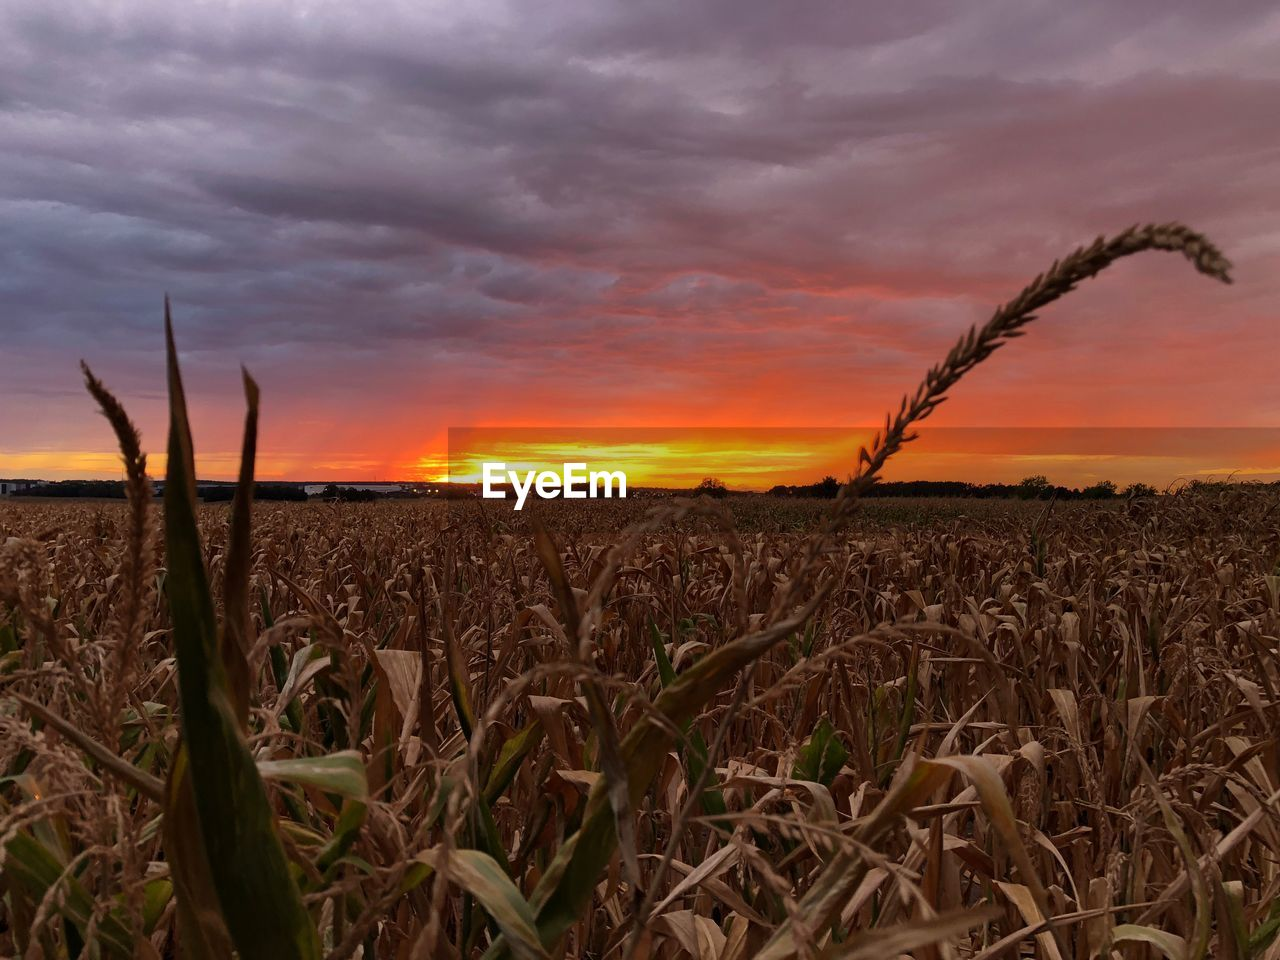 sky, cloud - sky, sunset, agriculture, crop, landscape, rural scene, field, plant, growth, beauty in nature, cereal plant, environment, tranquility, tranquil scene, scenics - nature, nature, farm, land, orange color, no people, outdoors, plantation